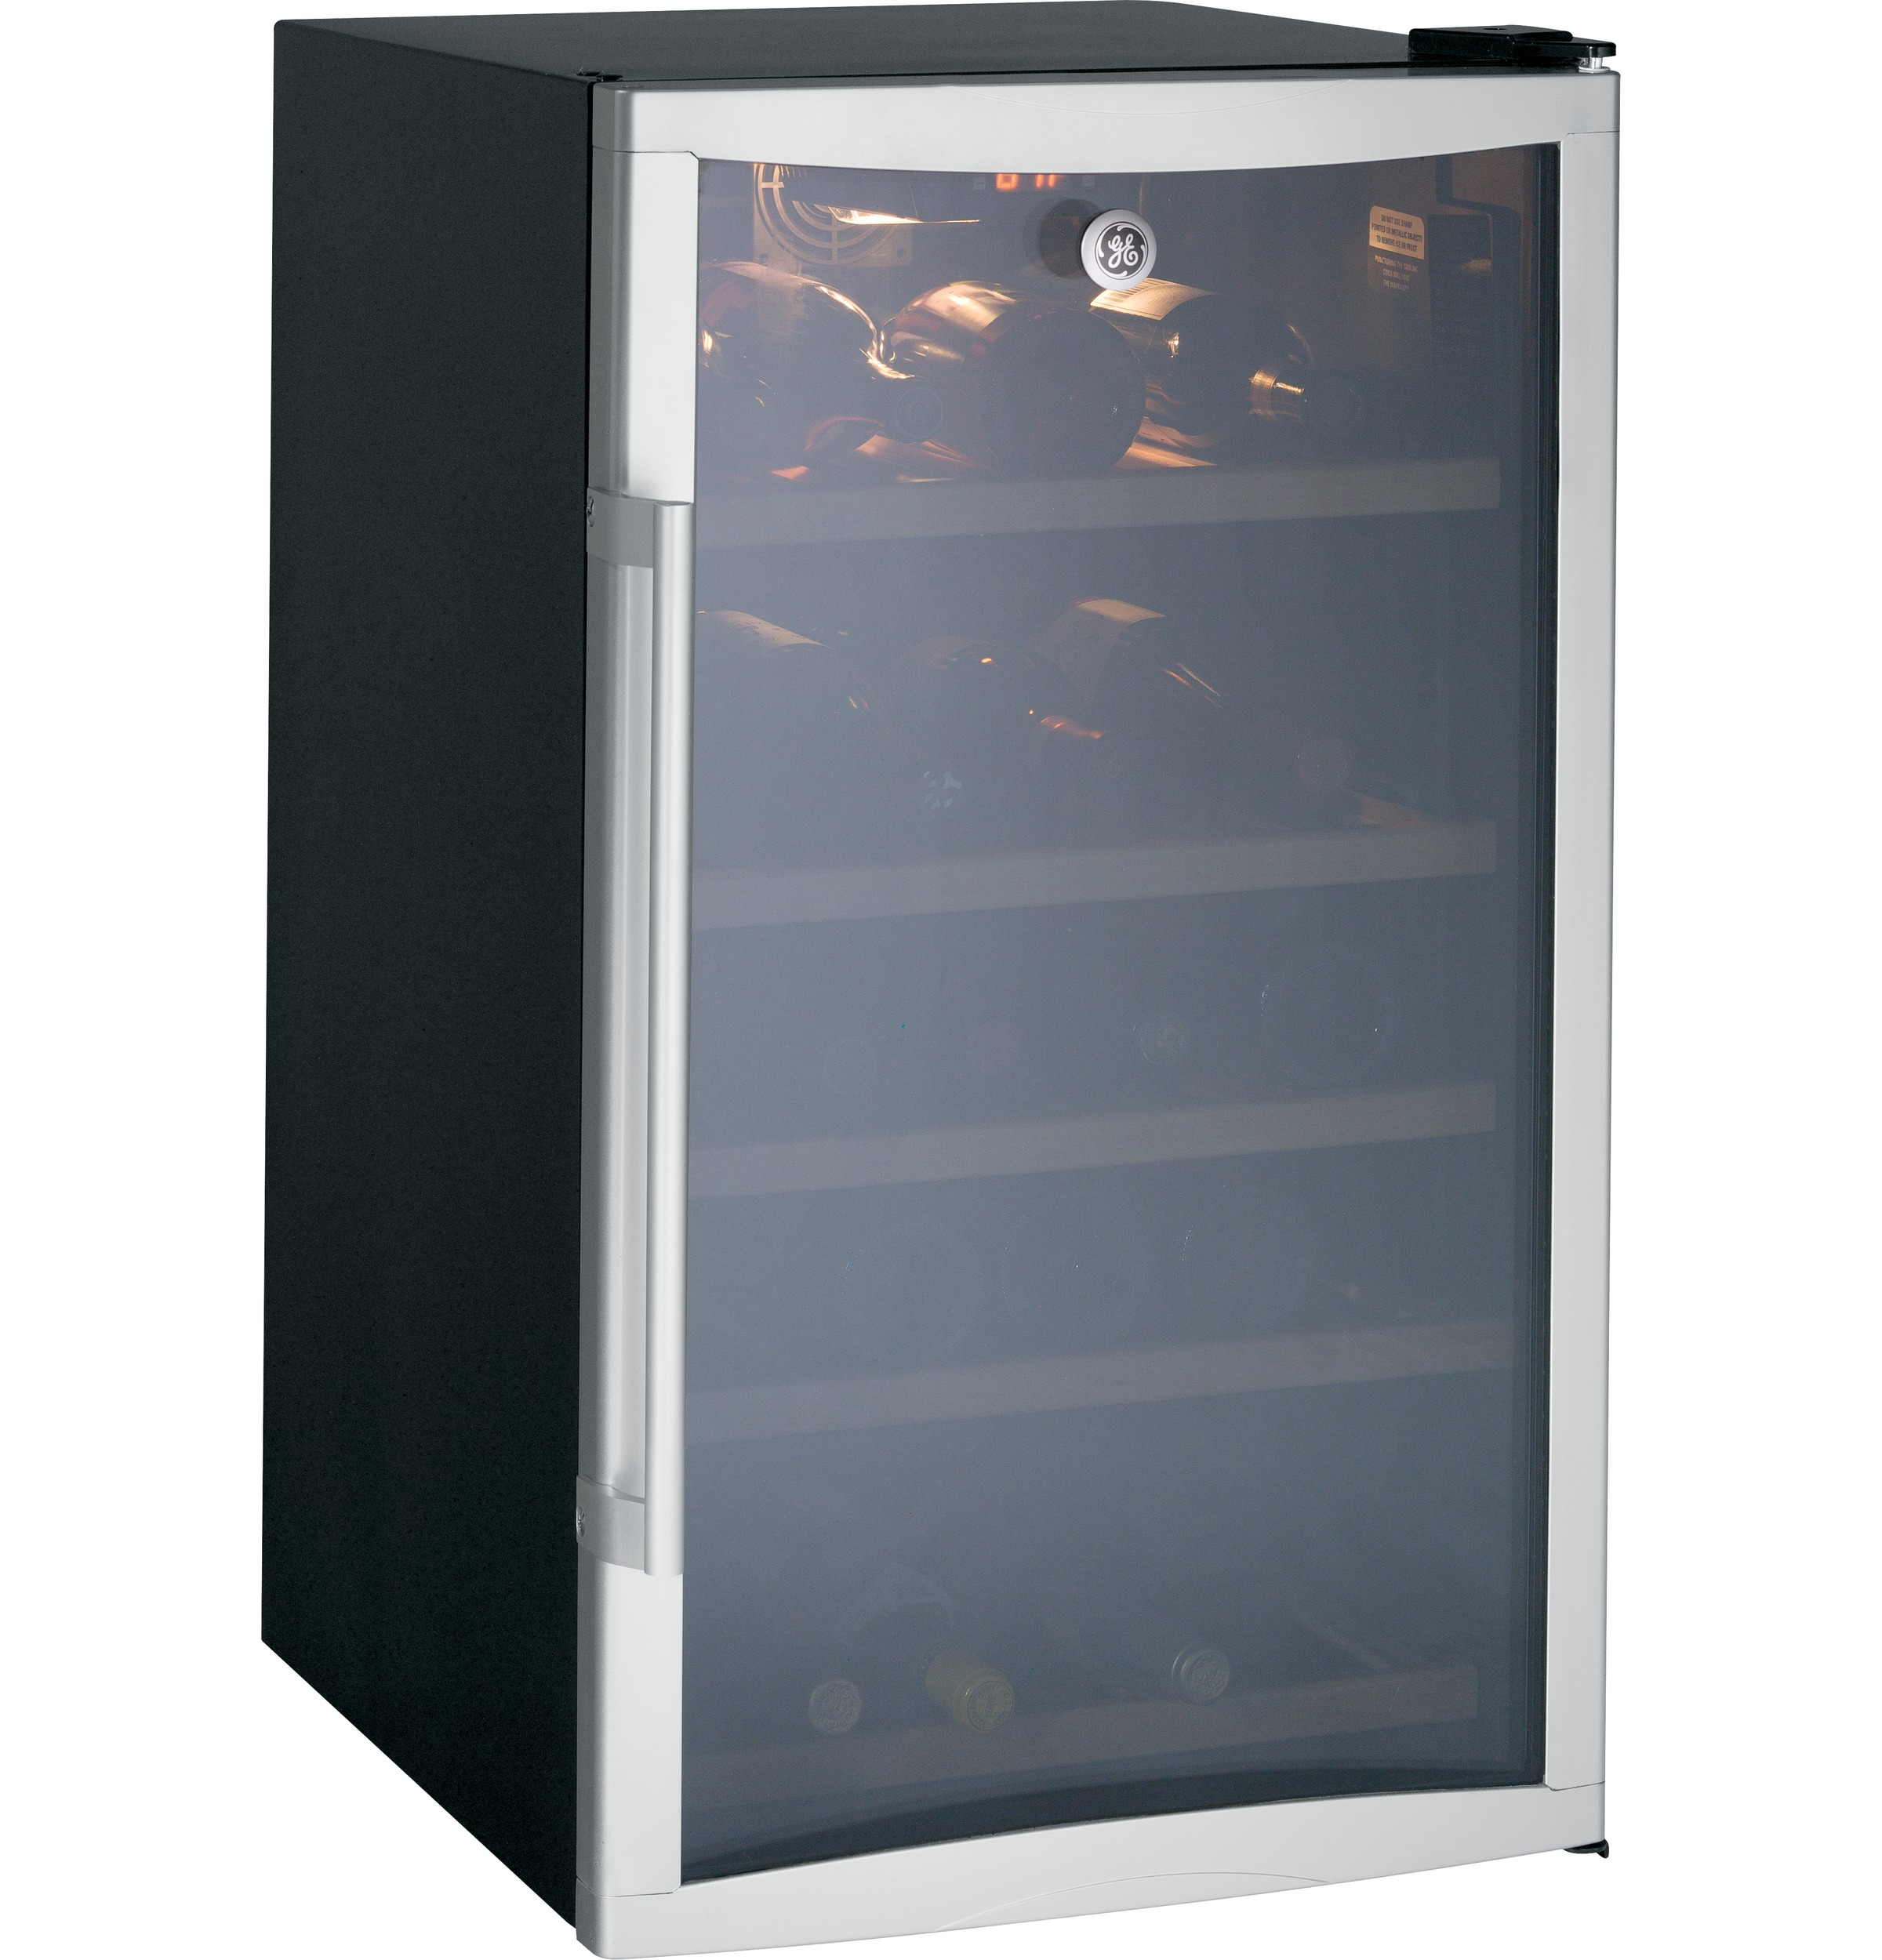 Ge Wine Or Beverage Center Gvs04bdwss Appliances Electrical Ss Home Product Image